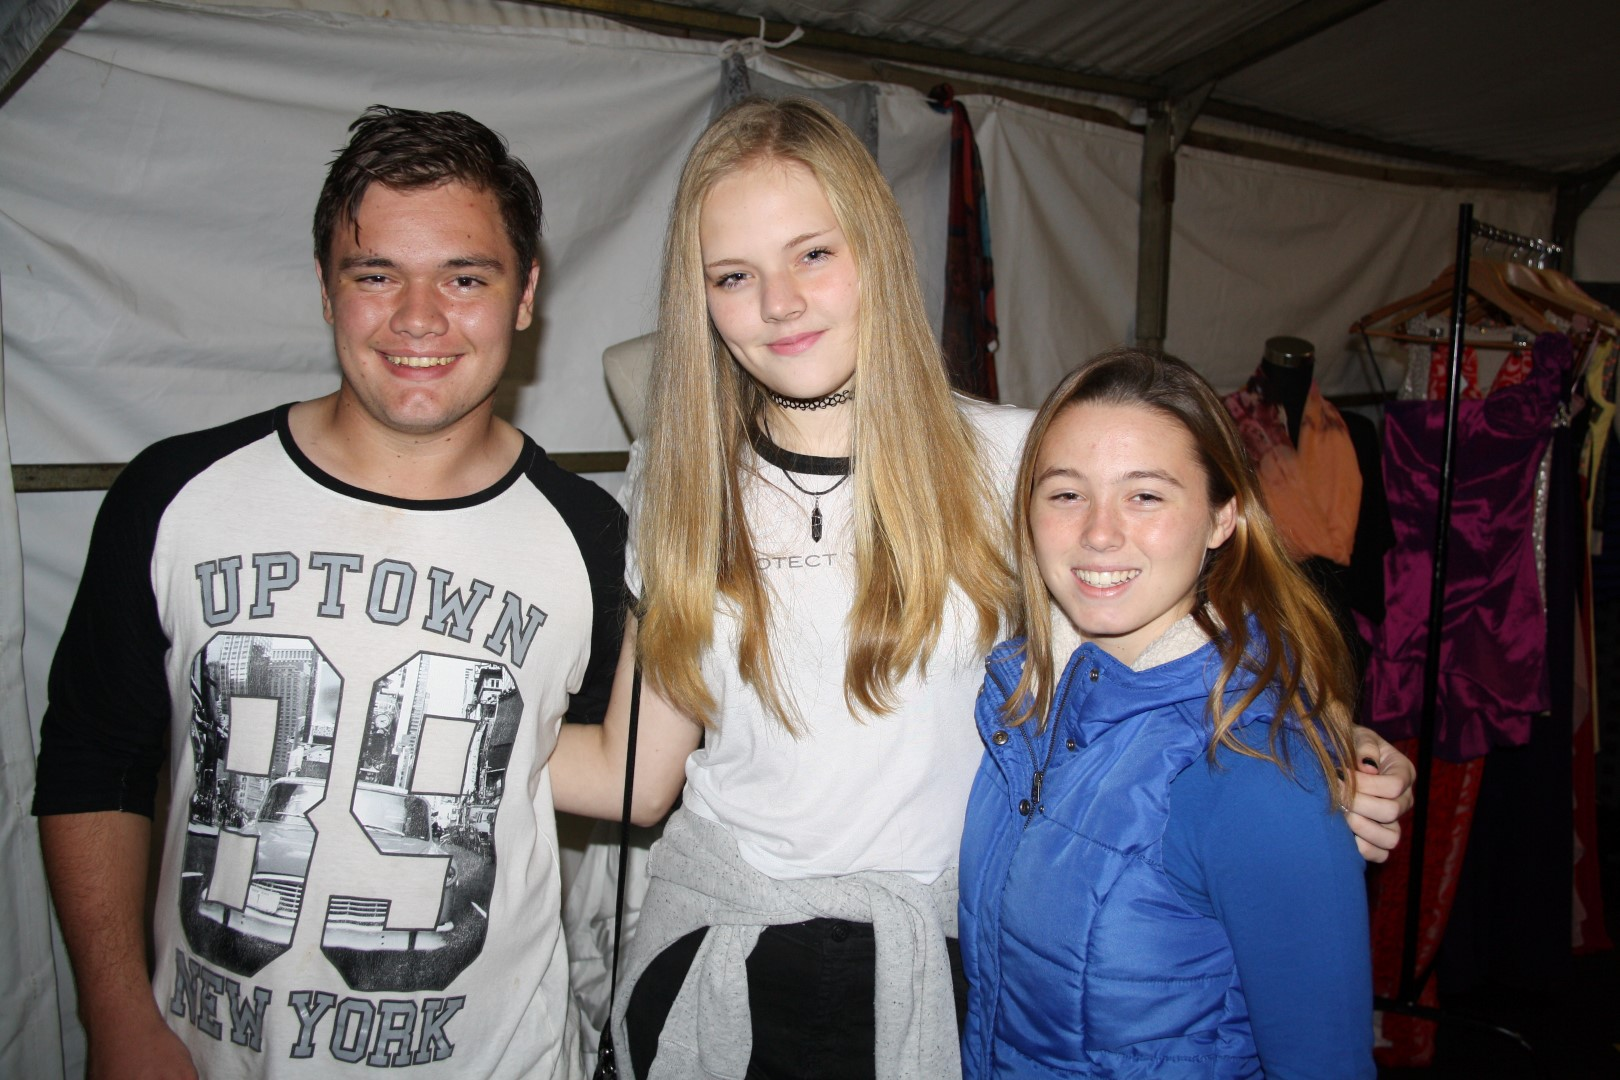 Durban North College recently hosted it's annual night market which was once again a resounding success for the school. Photo booths, live music, a bonfire and a shooting range were just some of the attractions on the night. Alex Carstens, Christie Voigt and Chelsea-Lea Smith.